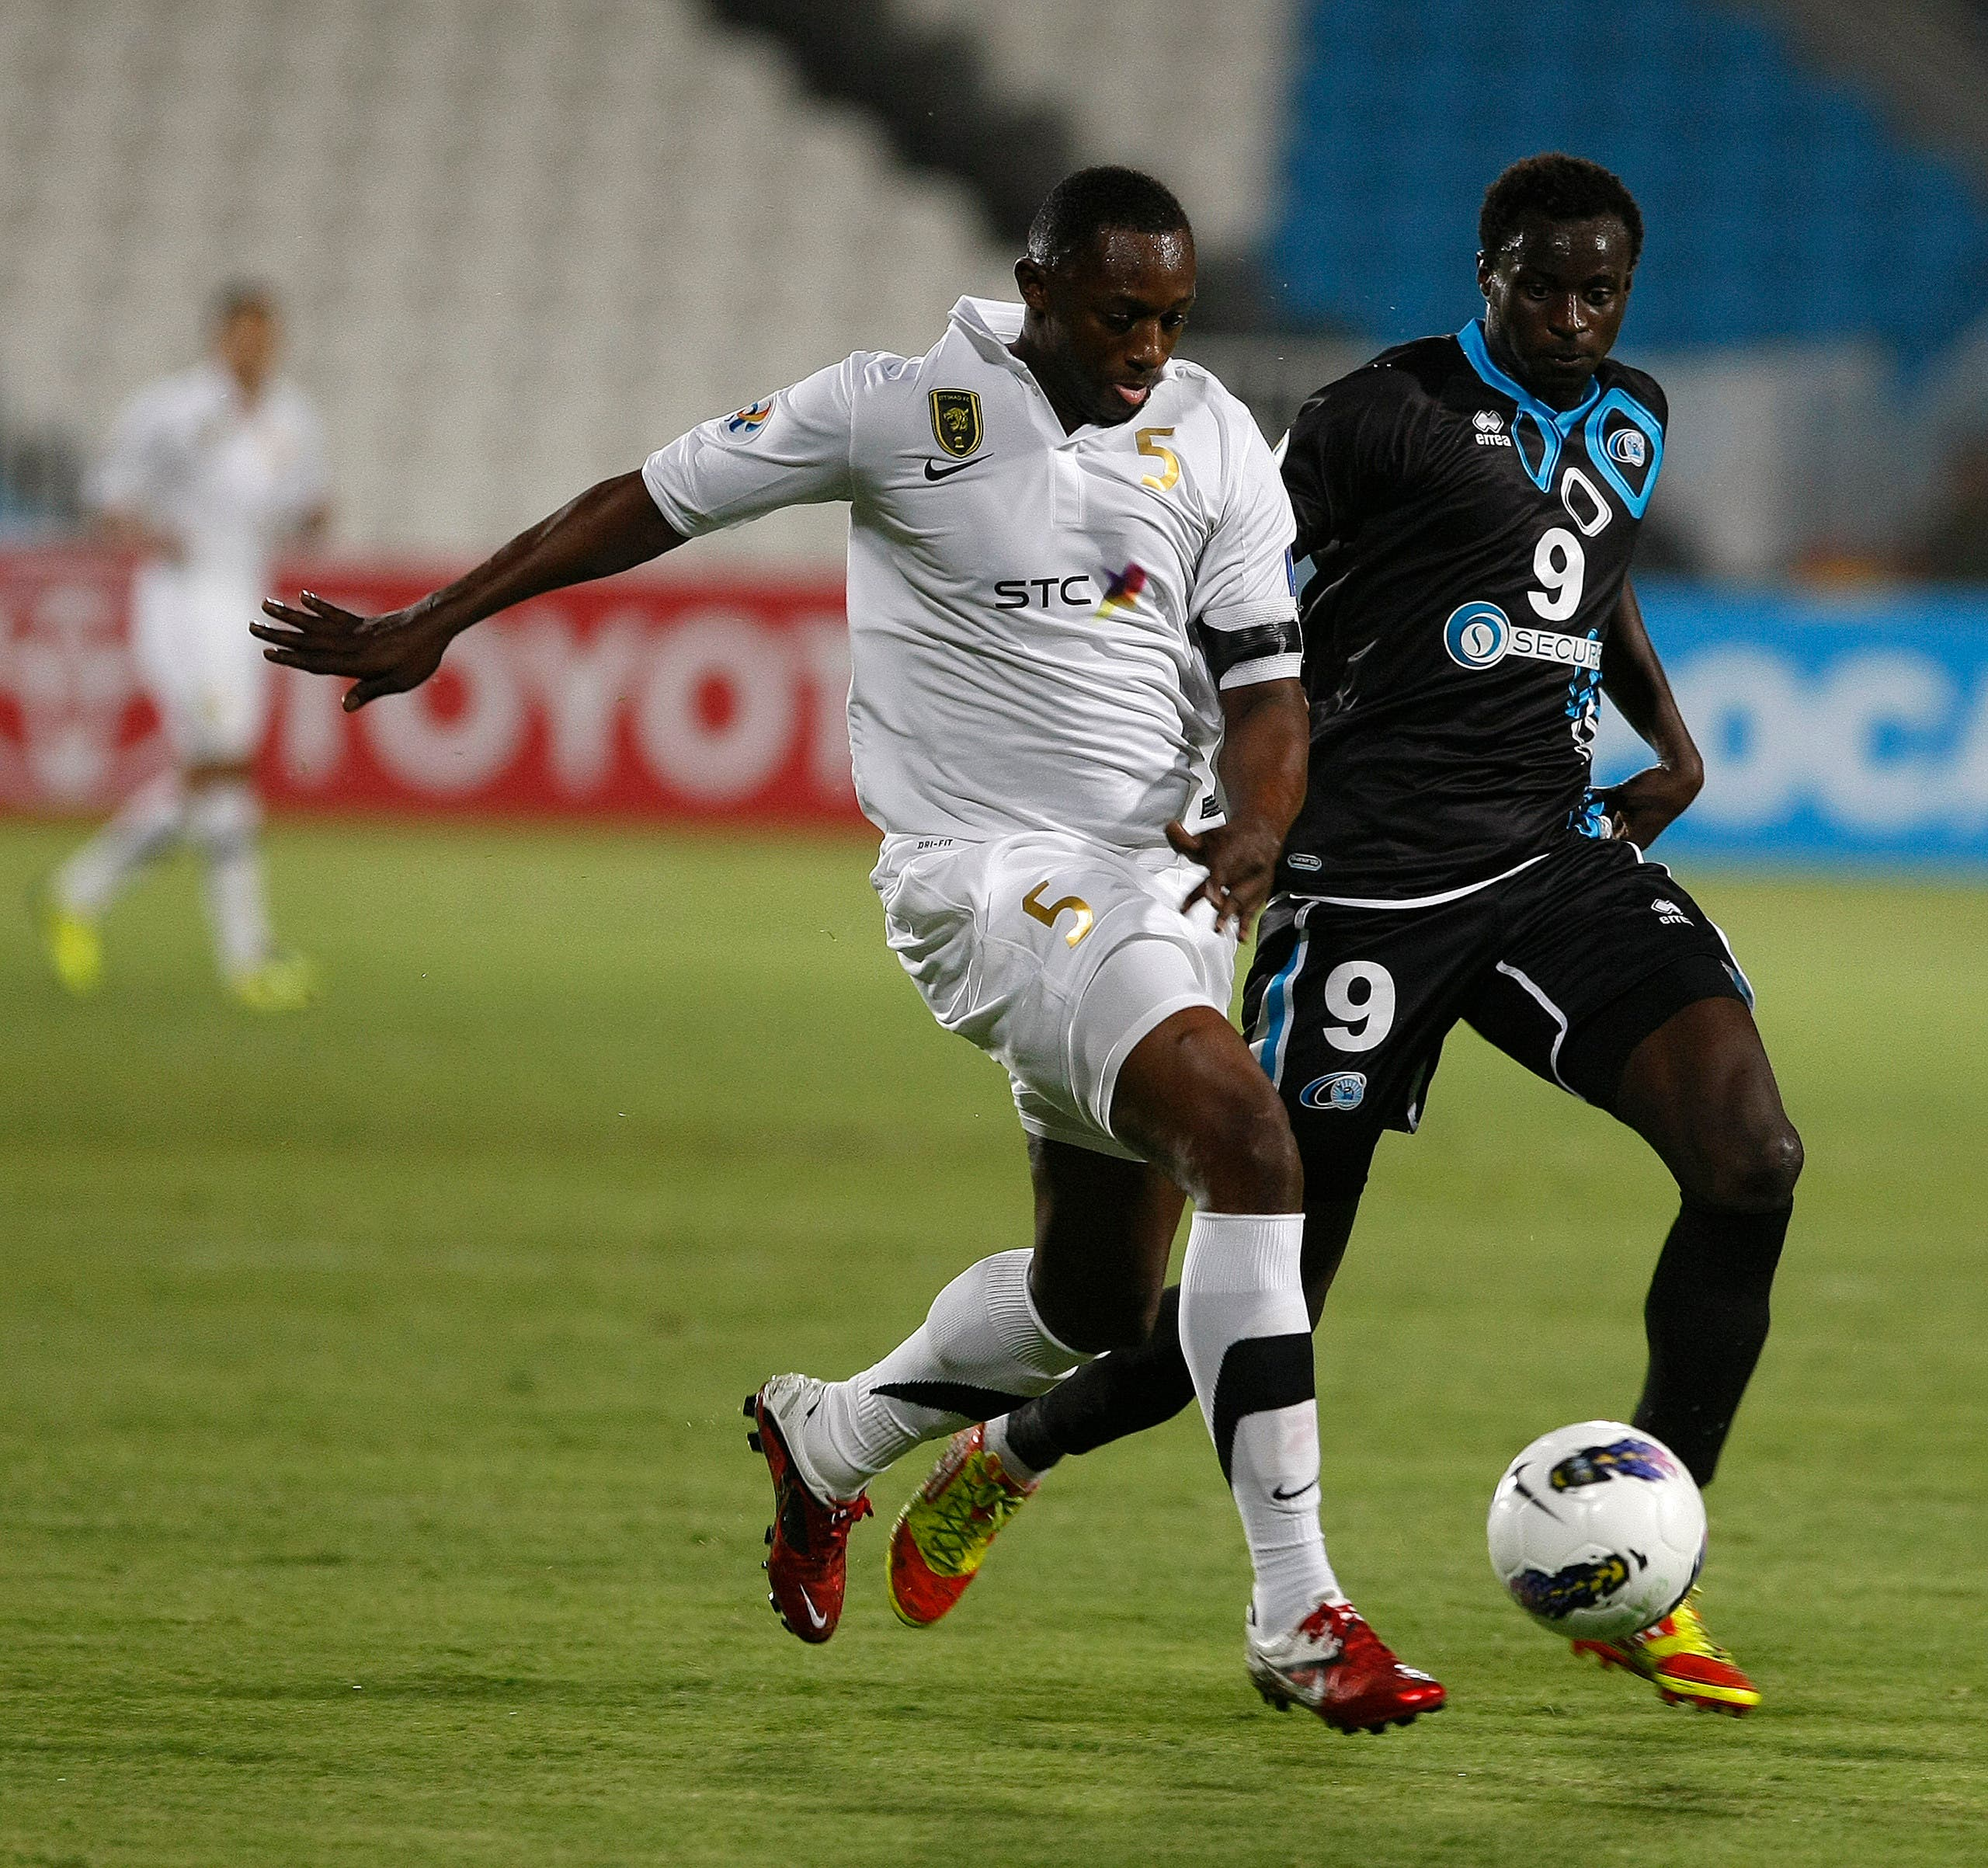 UAE's Baniyas club player Andre Senghor (R) fights for the ball with Saudi Arabia's Al-Ittihad club player Osama Harbi (L) during their Group B, AFC Champions League football match in Abu Dhabi on April 17, 2012. AFP